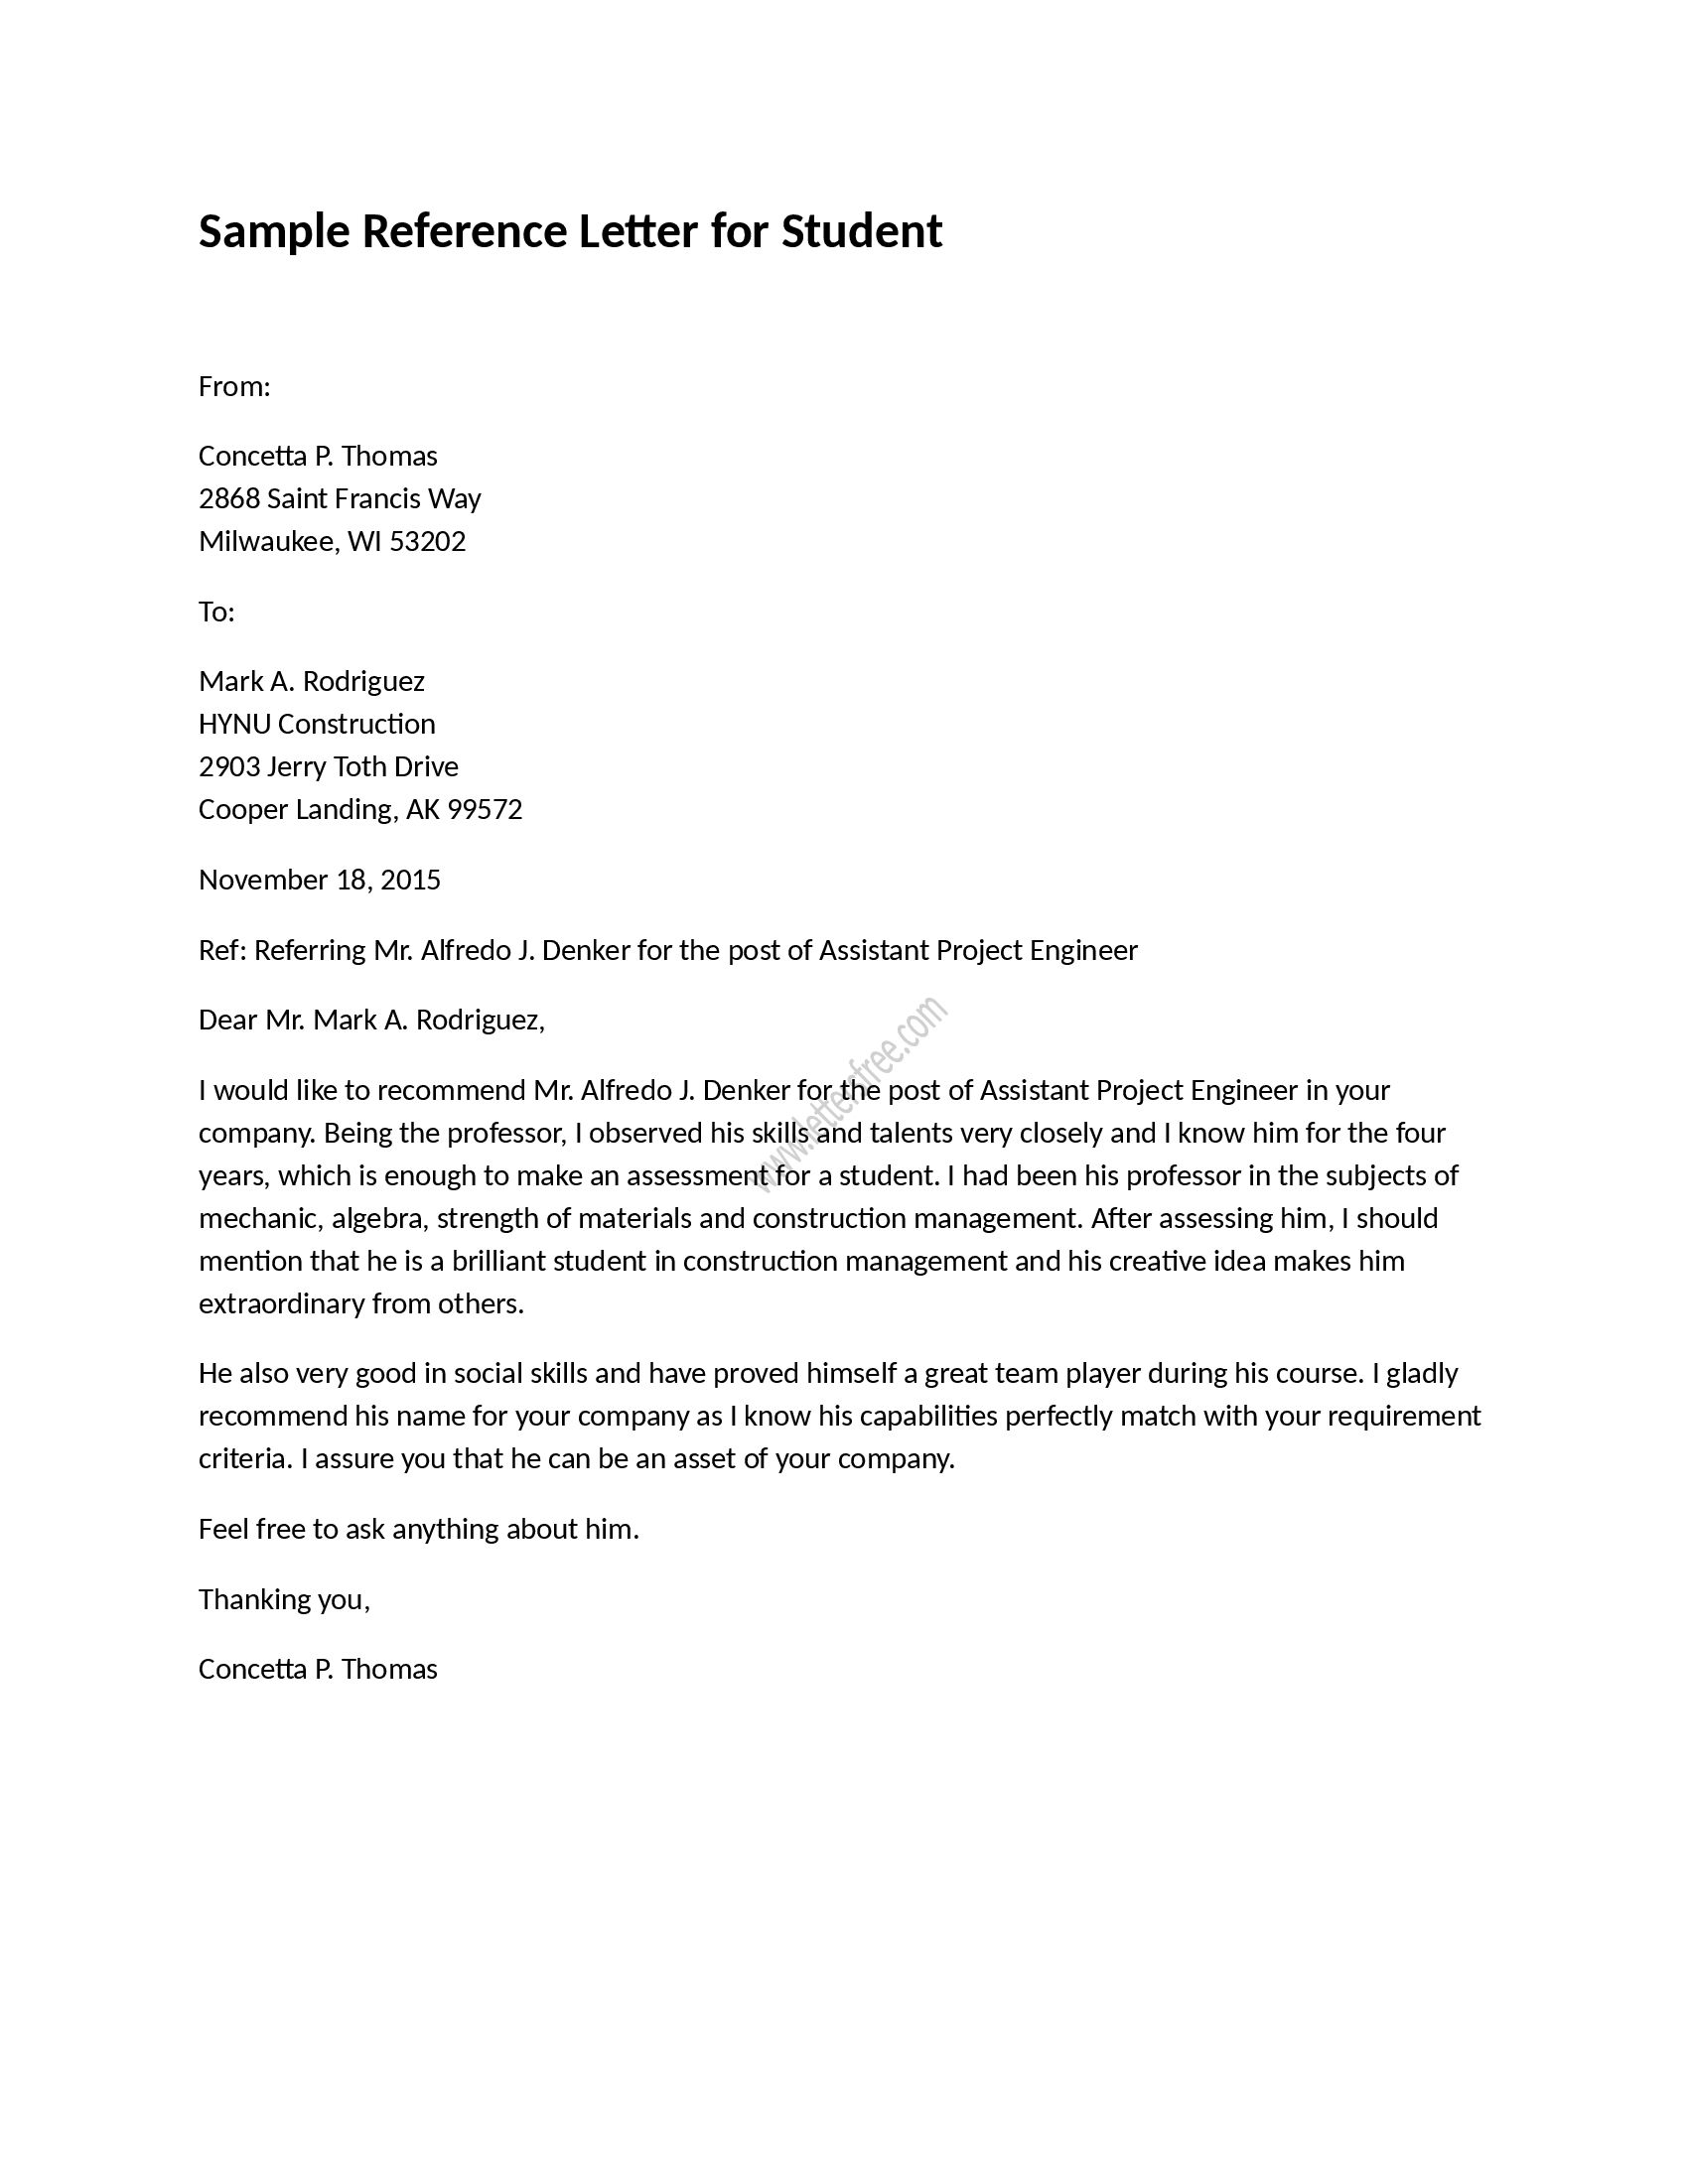 Sample reference letter for student is written to refer a